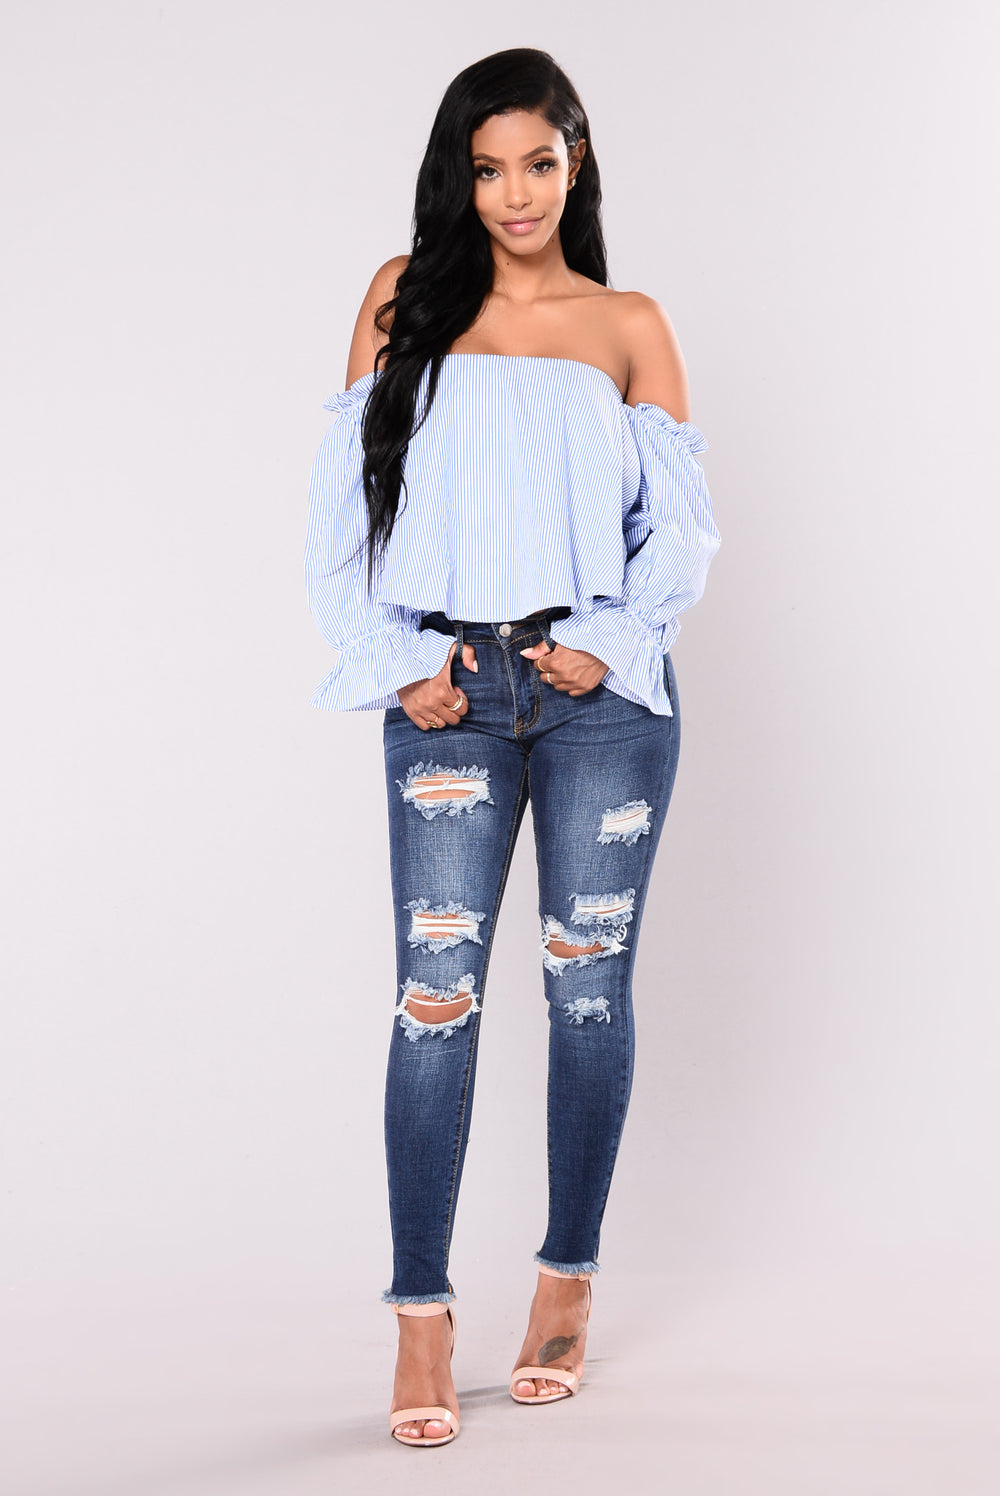 Bodhi Off Shoulder Top - Royal